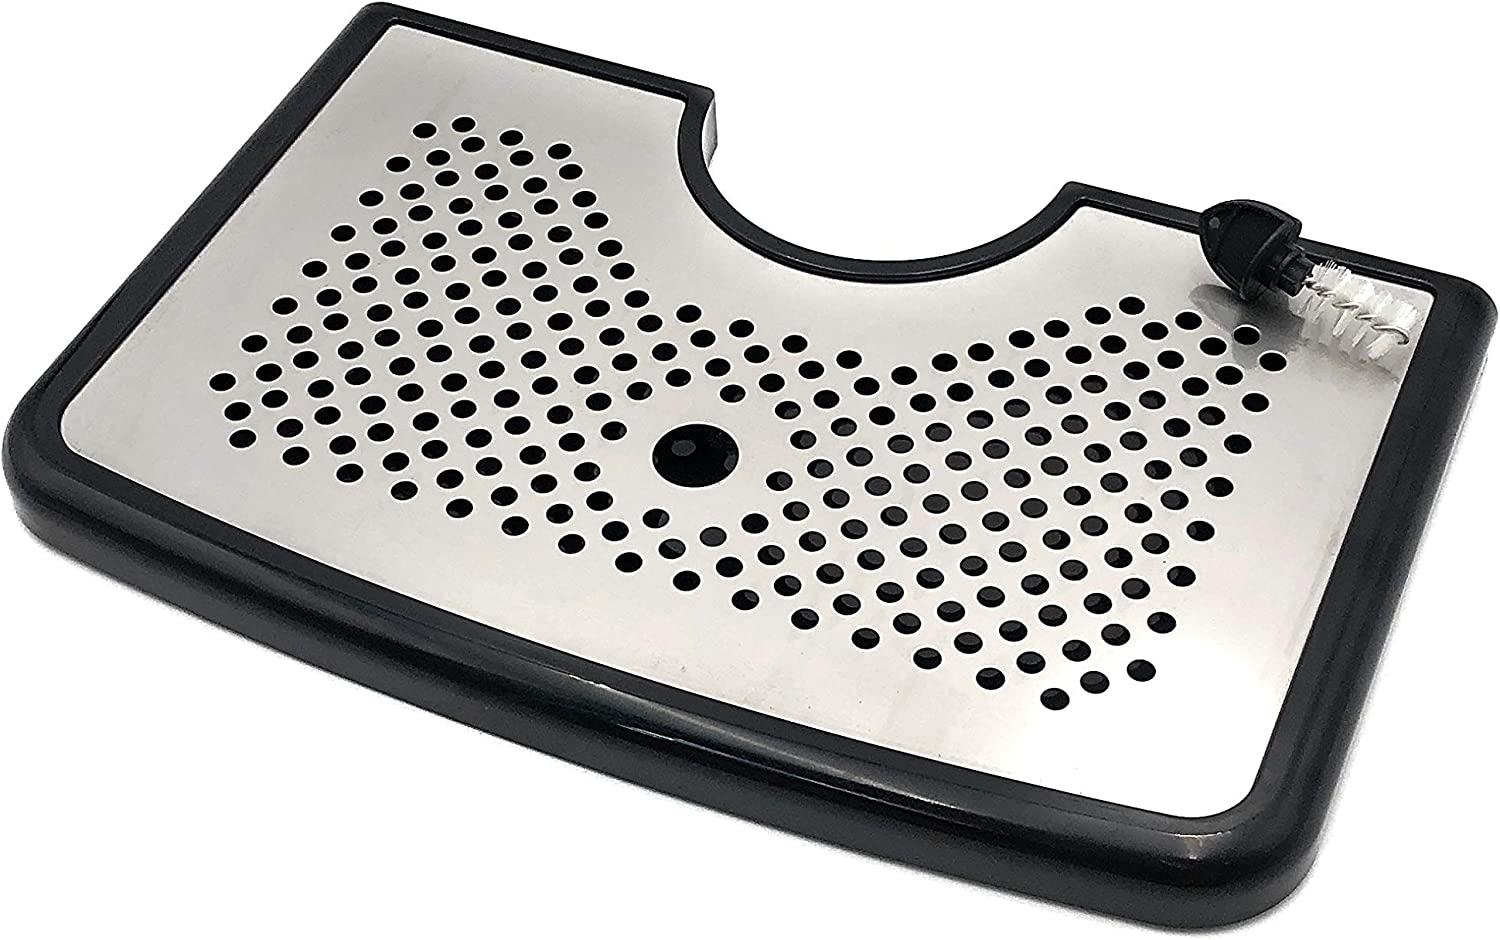 Inavua Beer Drip Tray for Homebrew Kegerators | Tap Faucet Brush Included! | THE Drip Tray for Kegerator Cleanliness | Our Kegerator Drip Trays Keep Your Homebrew In Your Glass And Off Your Counter!